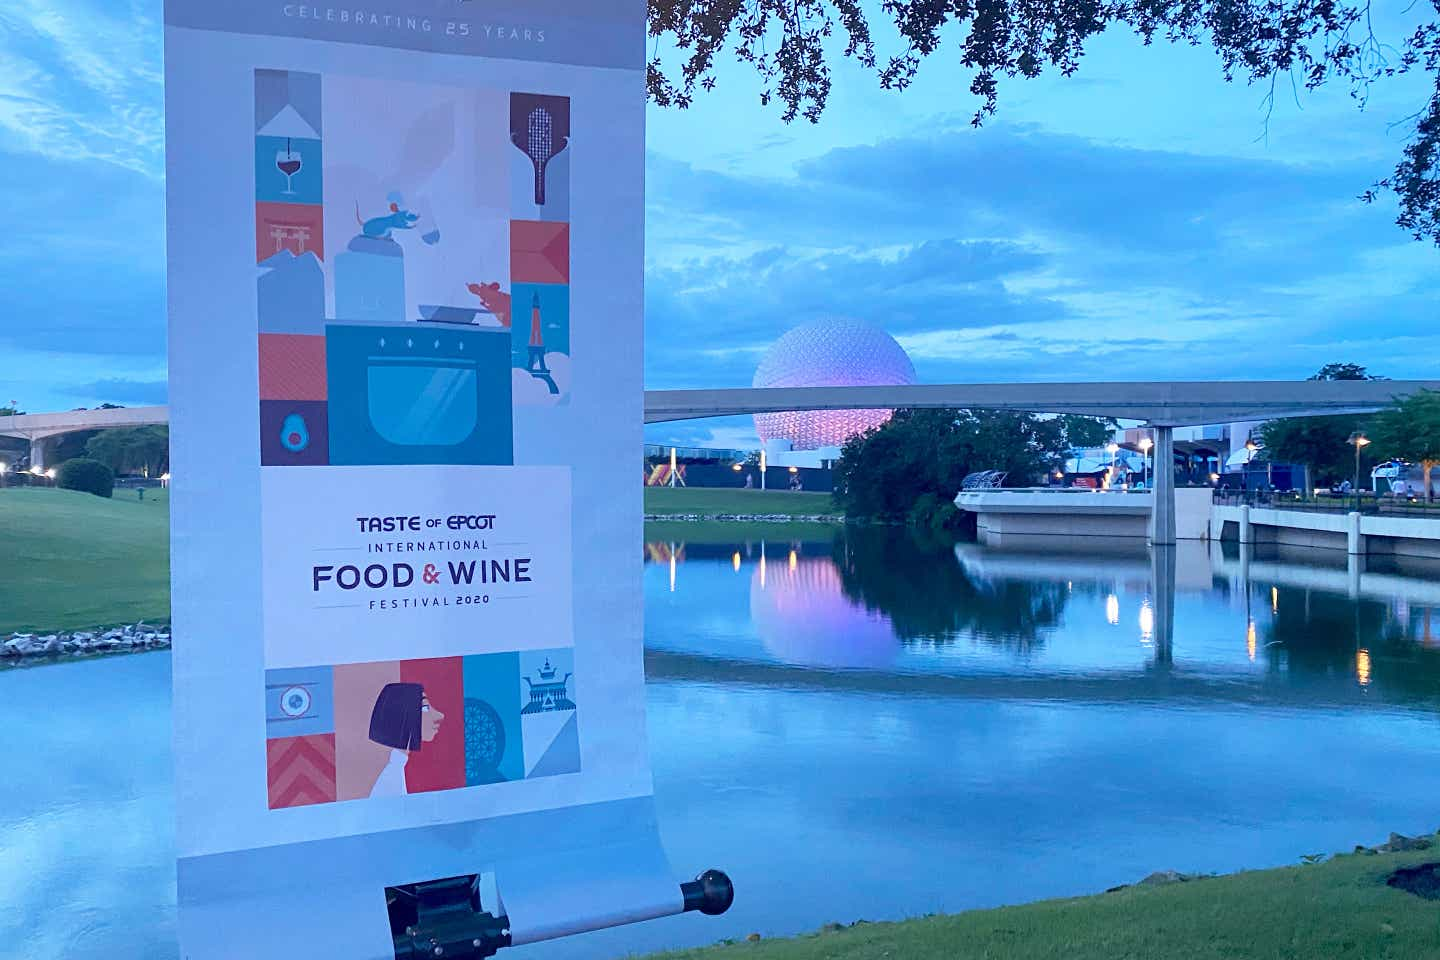 Taste of EPCOT International Food & Wine Festival banner stands on a post as Future World at EPCOT can be seen in the background.